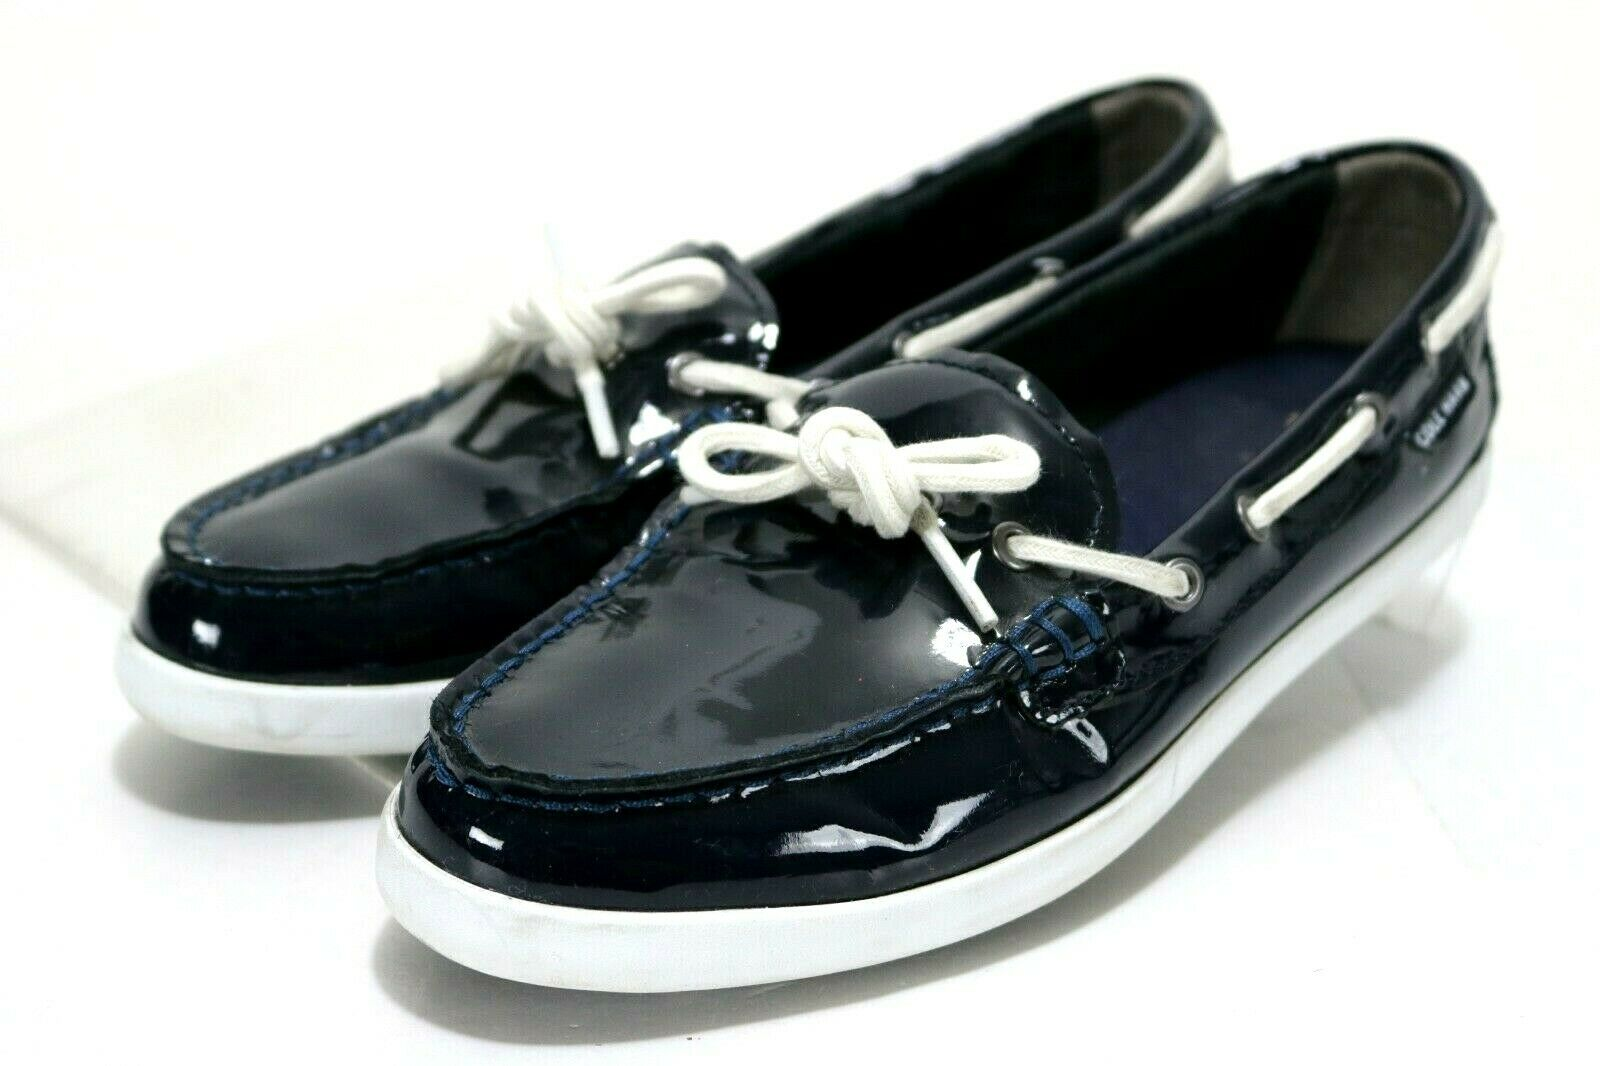 Cole Haan Nantucket Camp  120 Women's Patent Leather Boat shoes Size 8.5 B bluee